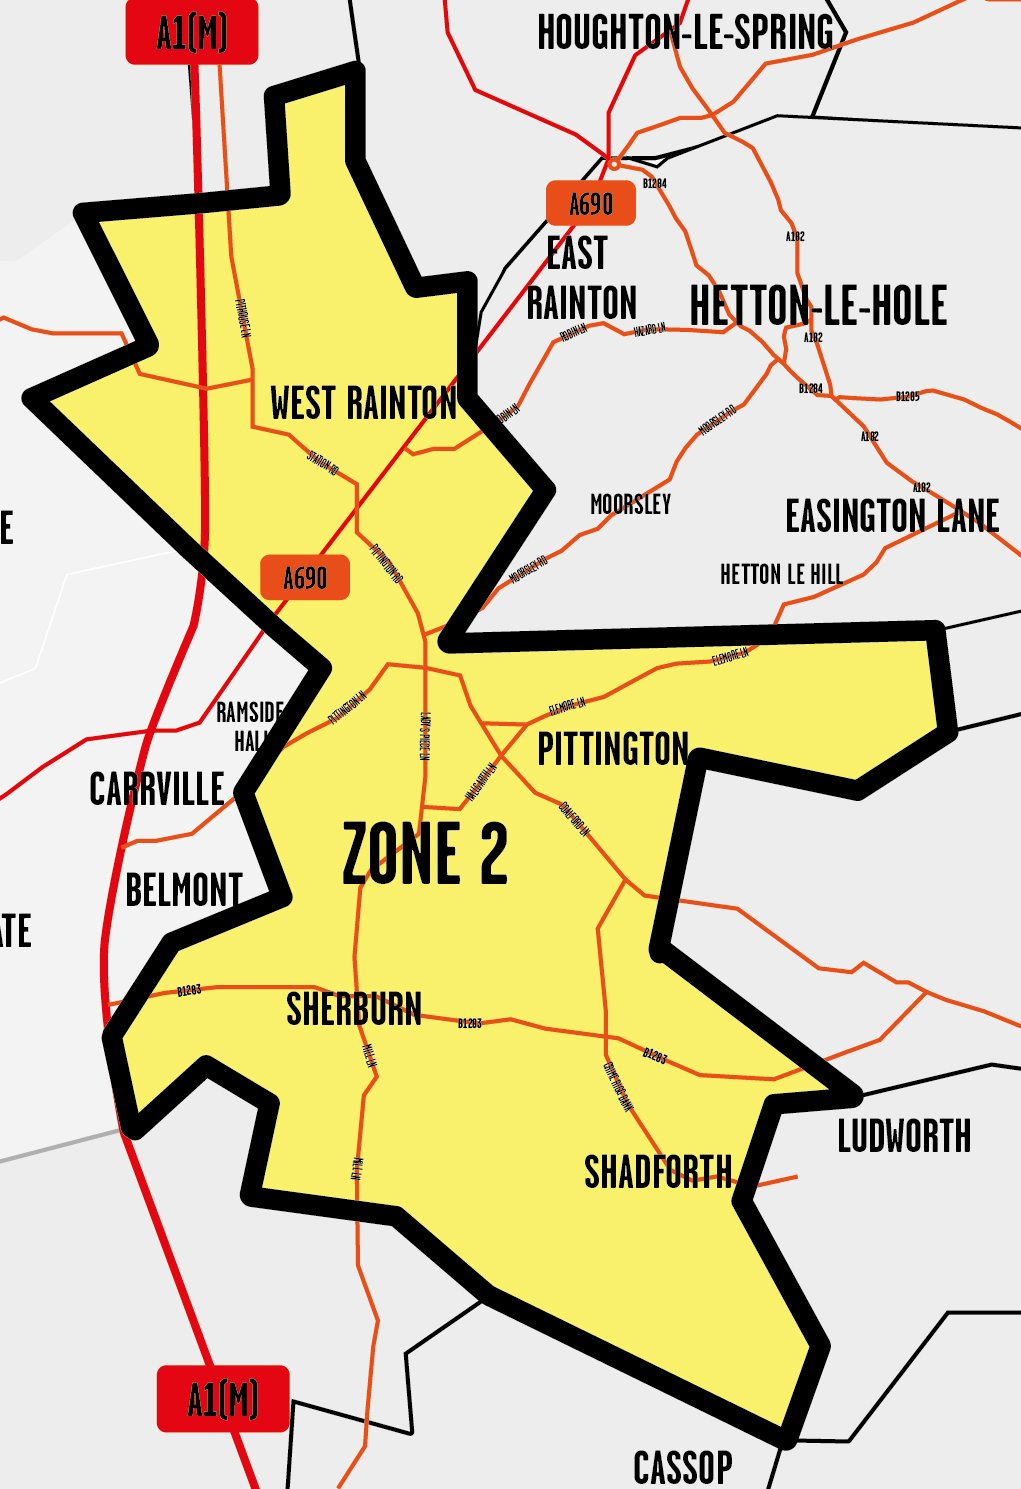 NE-DURHAM-REGIONS-ZONE-MAP-A4-2021-UPDATE-ZONE-2